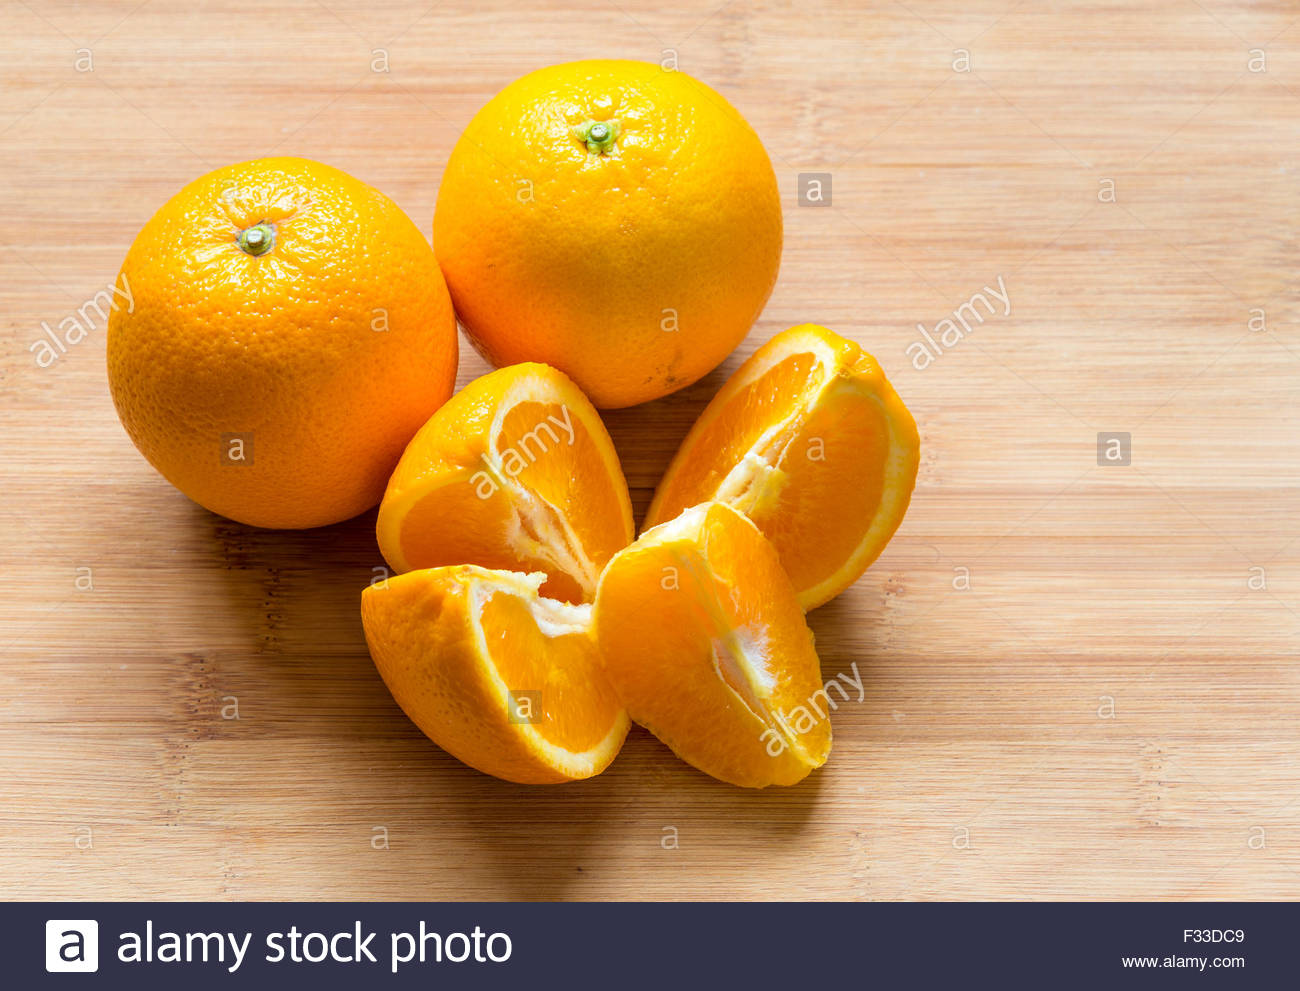 Oranges placed on a wooden chopping board. There are two whole oranges and four quarter cut pieces. - Stock Image